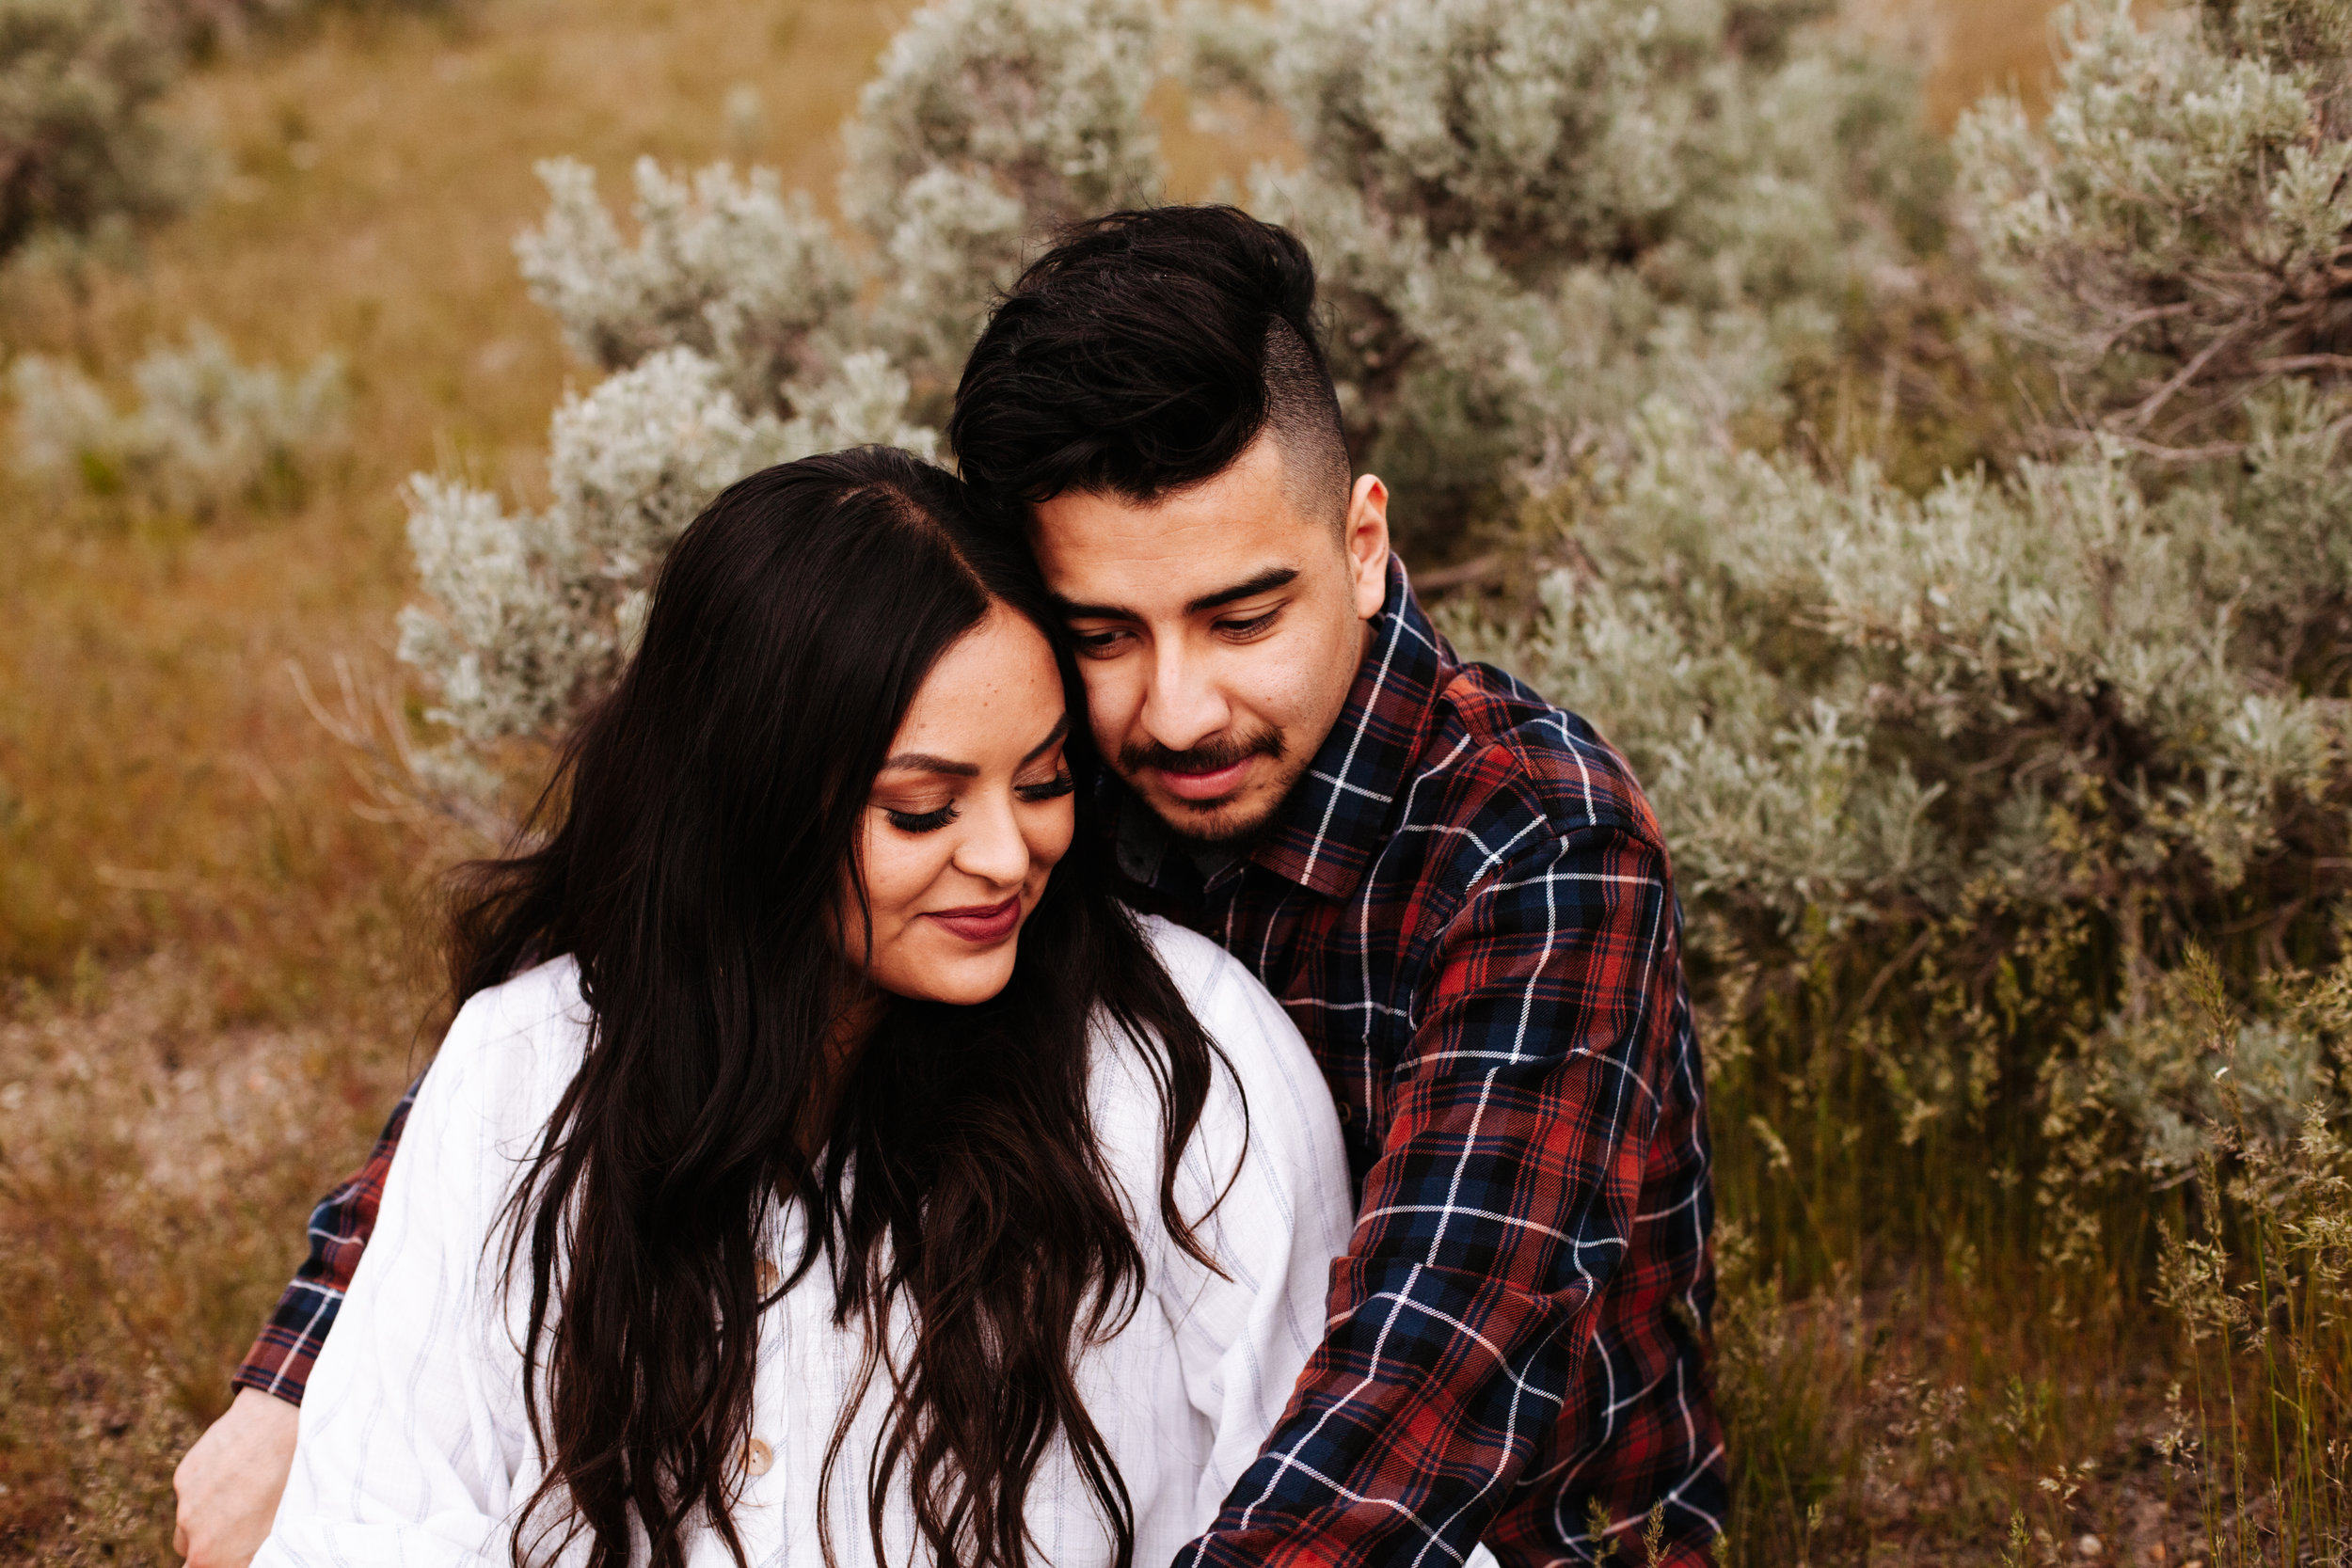 +Grassy Fields +Windy Engagement Sessoin +Utah Engagement  Photographer +SLC Engagement +Utah Wedding Photographer +Marina Rey Photo-8091.jpg